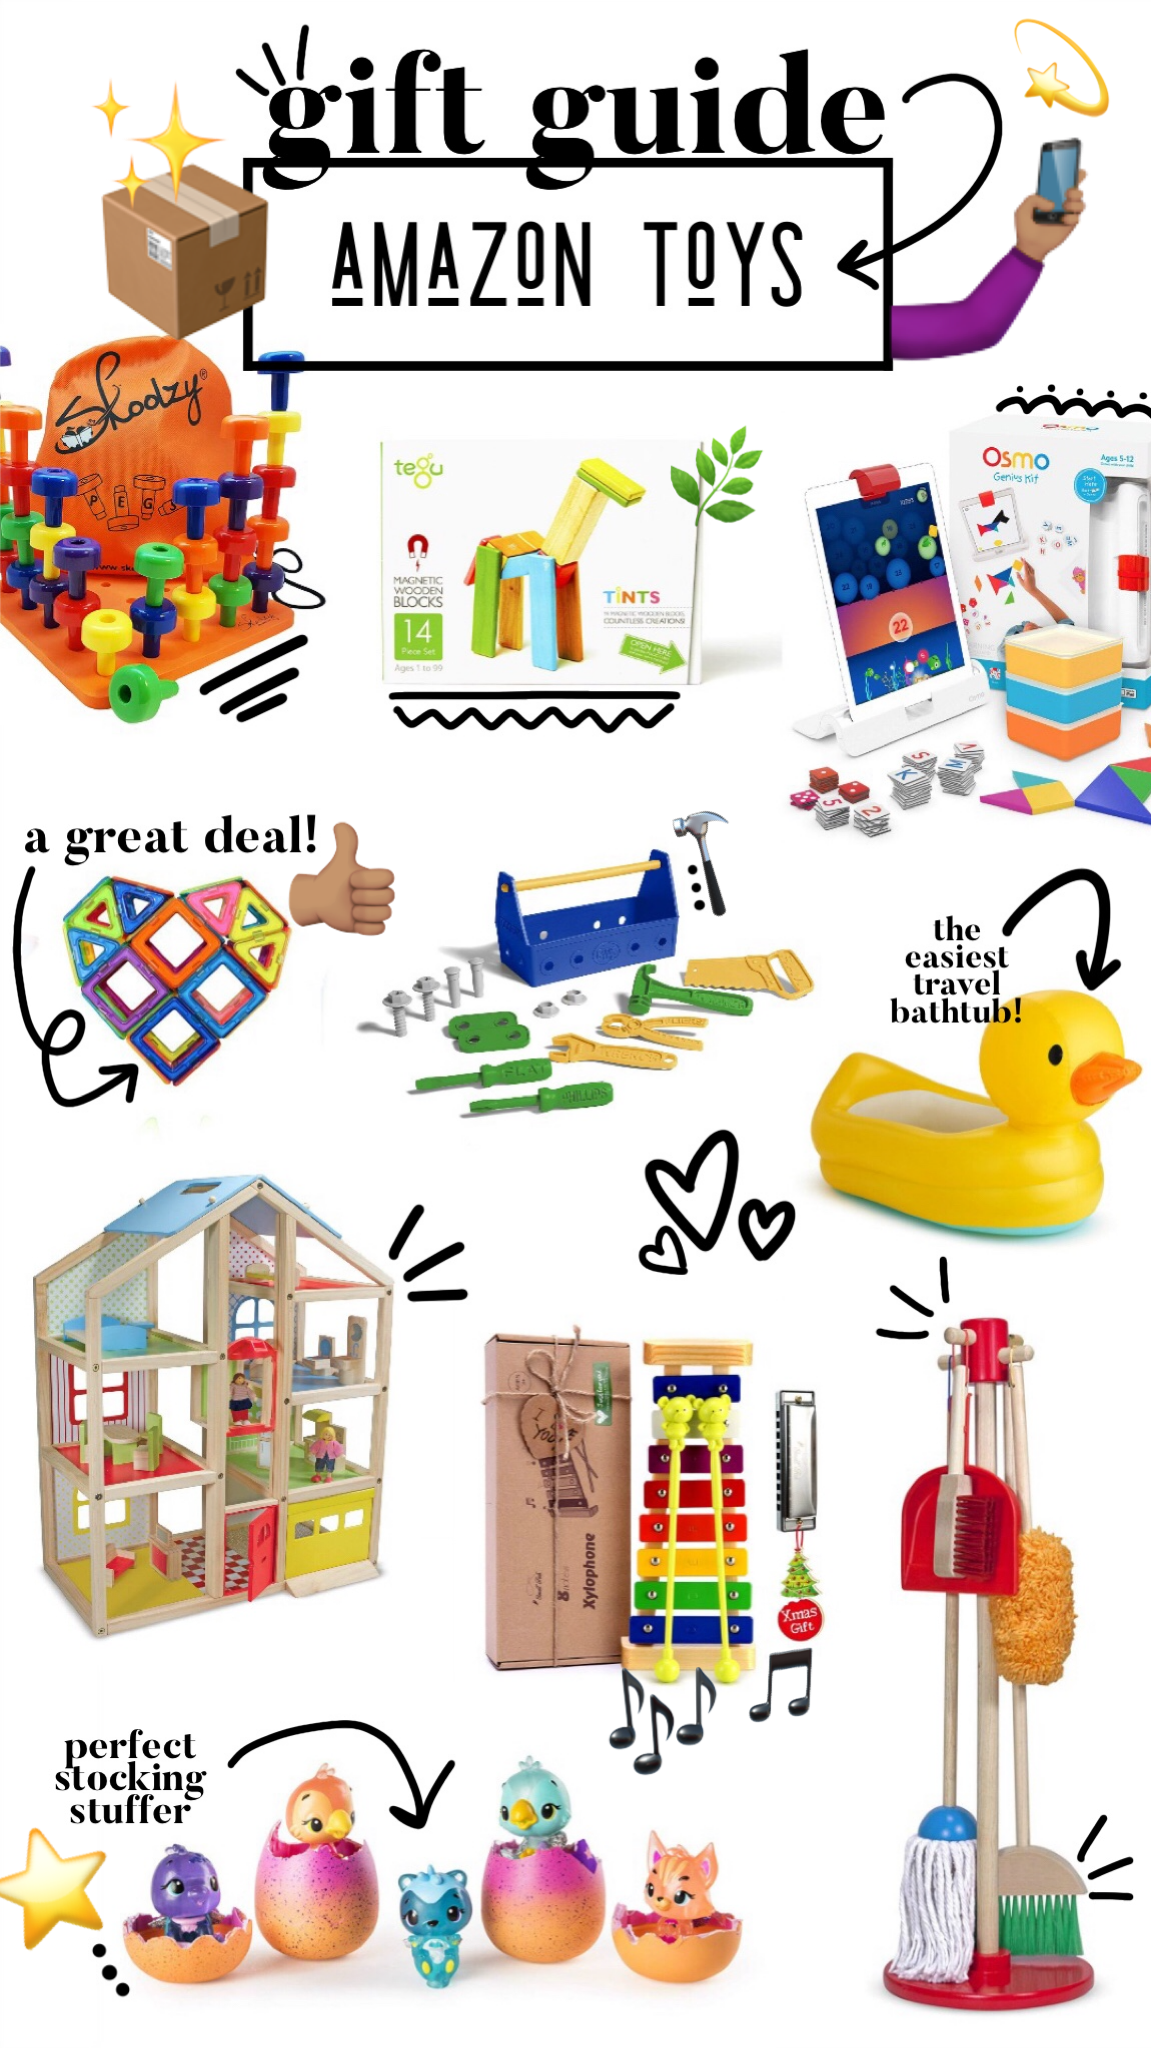 Gift guide: Amazon toys!